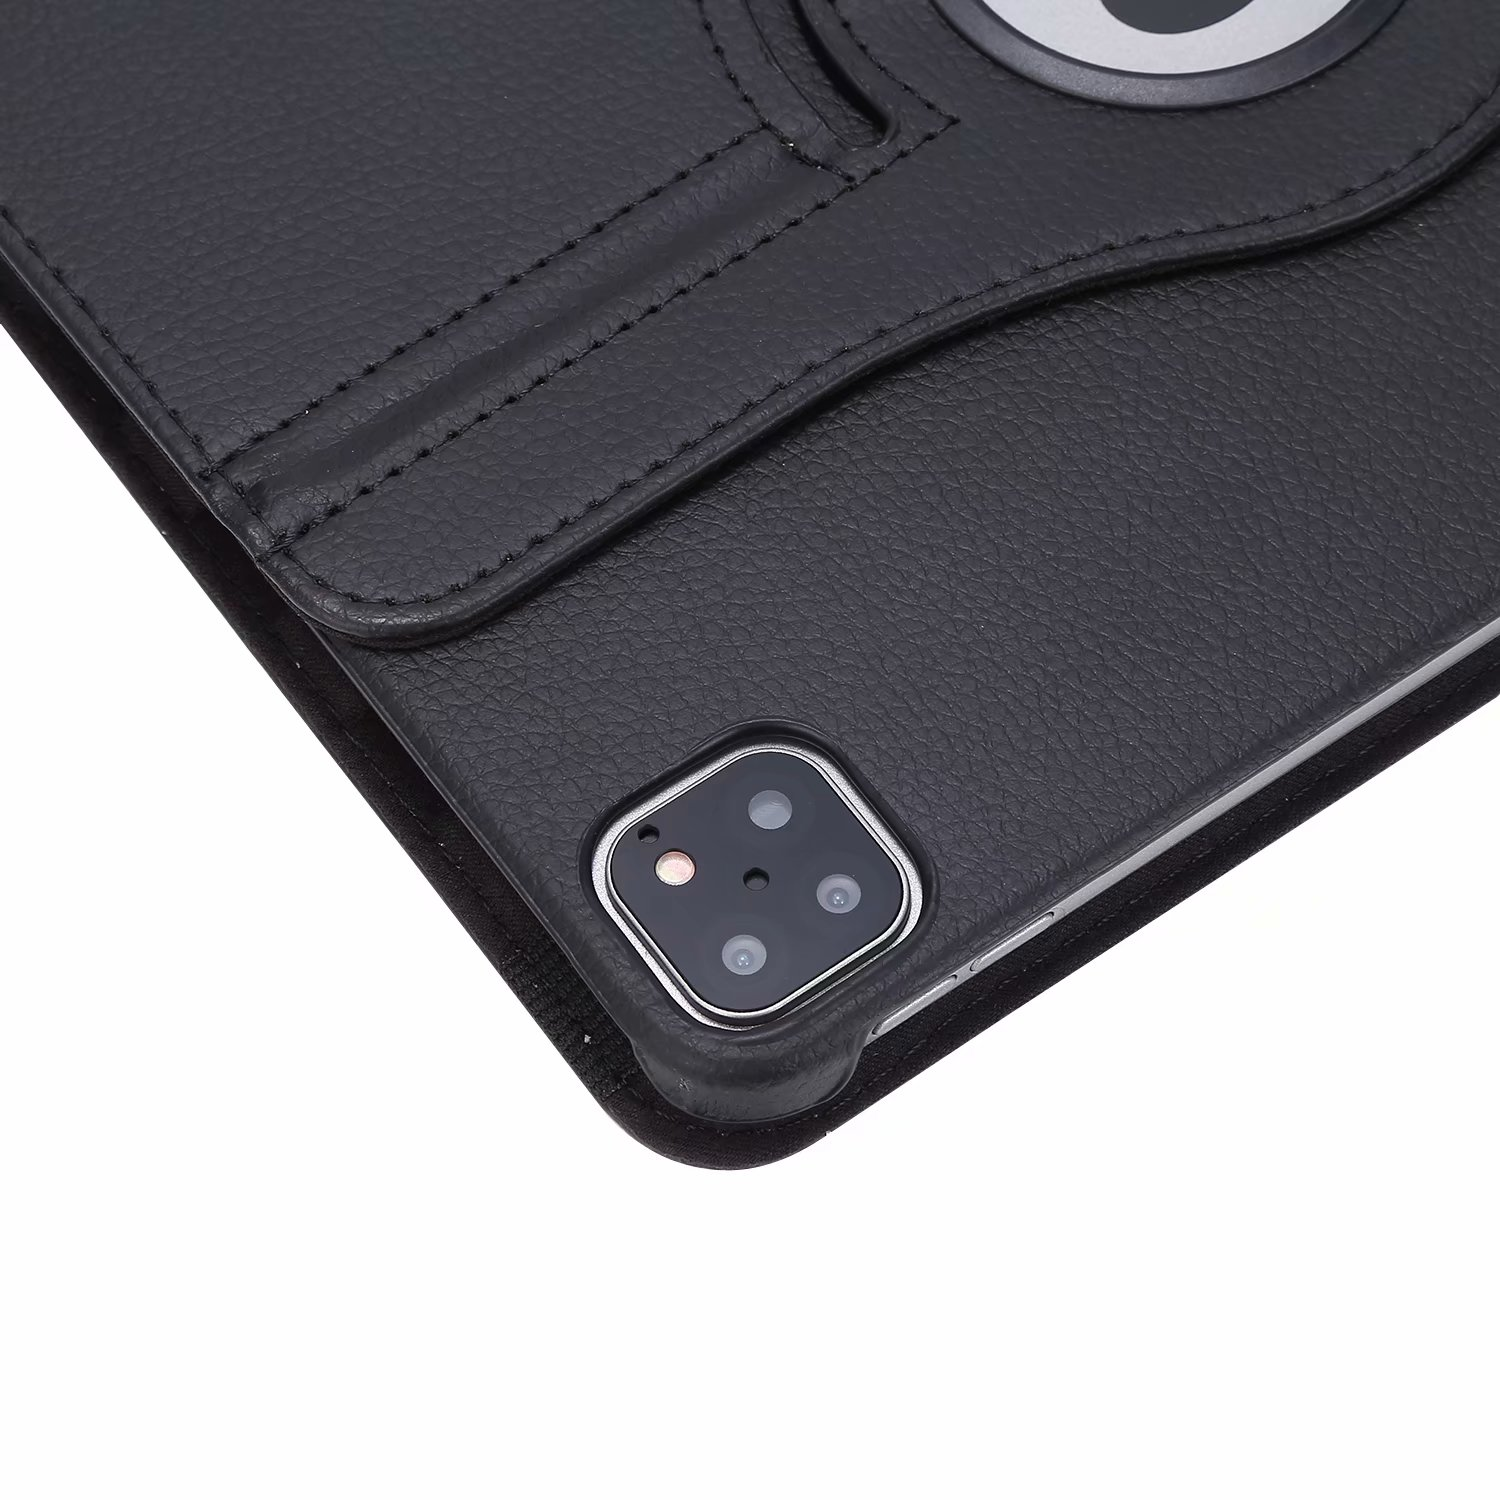 A1980 A2013 Case 11 360 Pro A2230 iPad for A1934 A2228 A2068 2021/2020/2018 Cover Degree